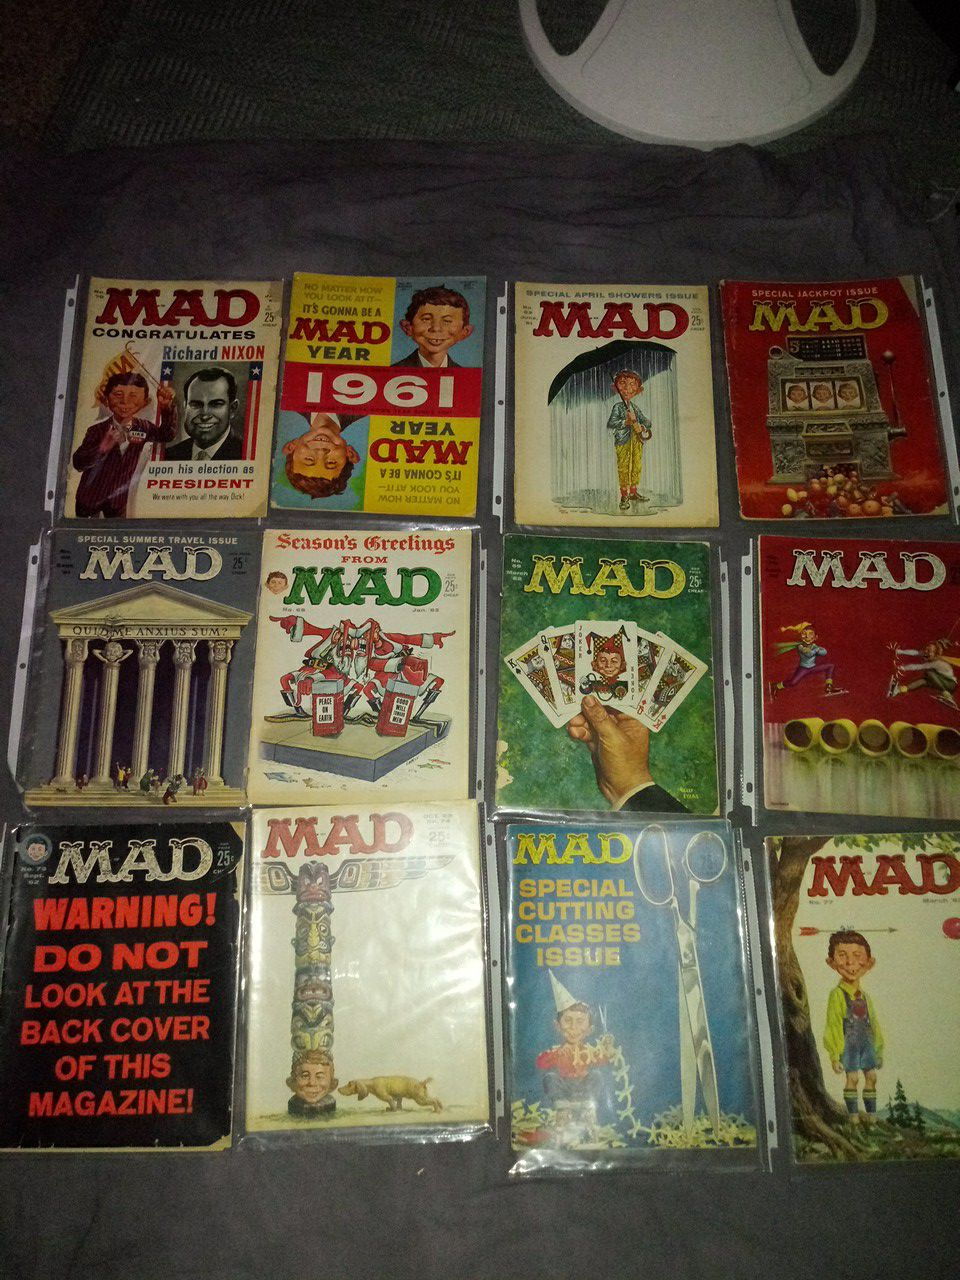 Vintage 1960's mad magazine collection